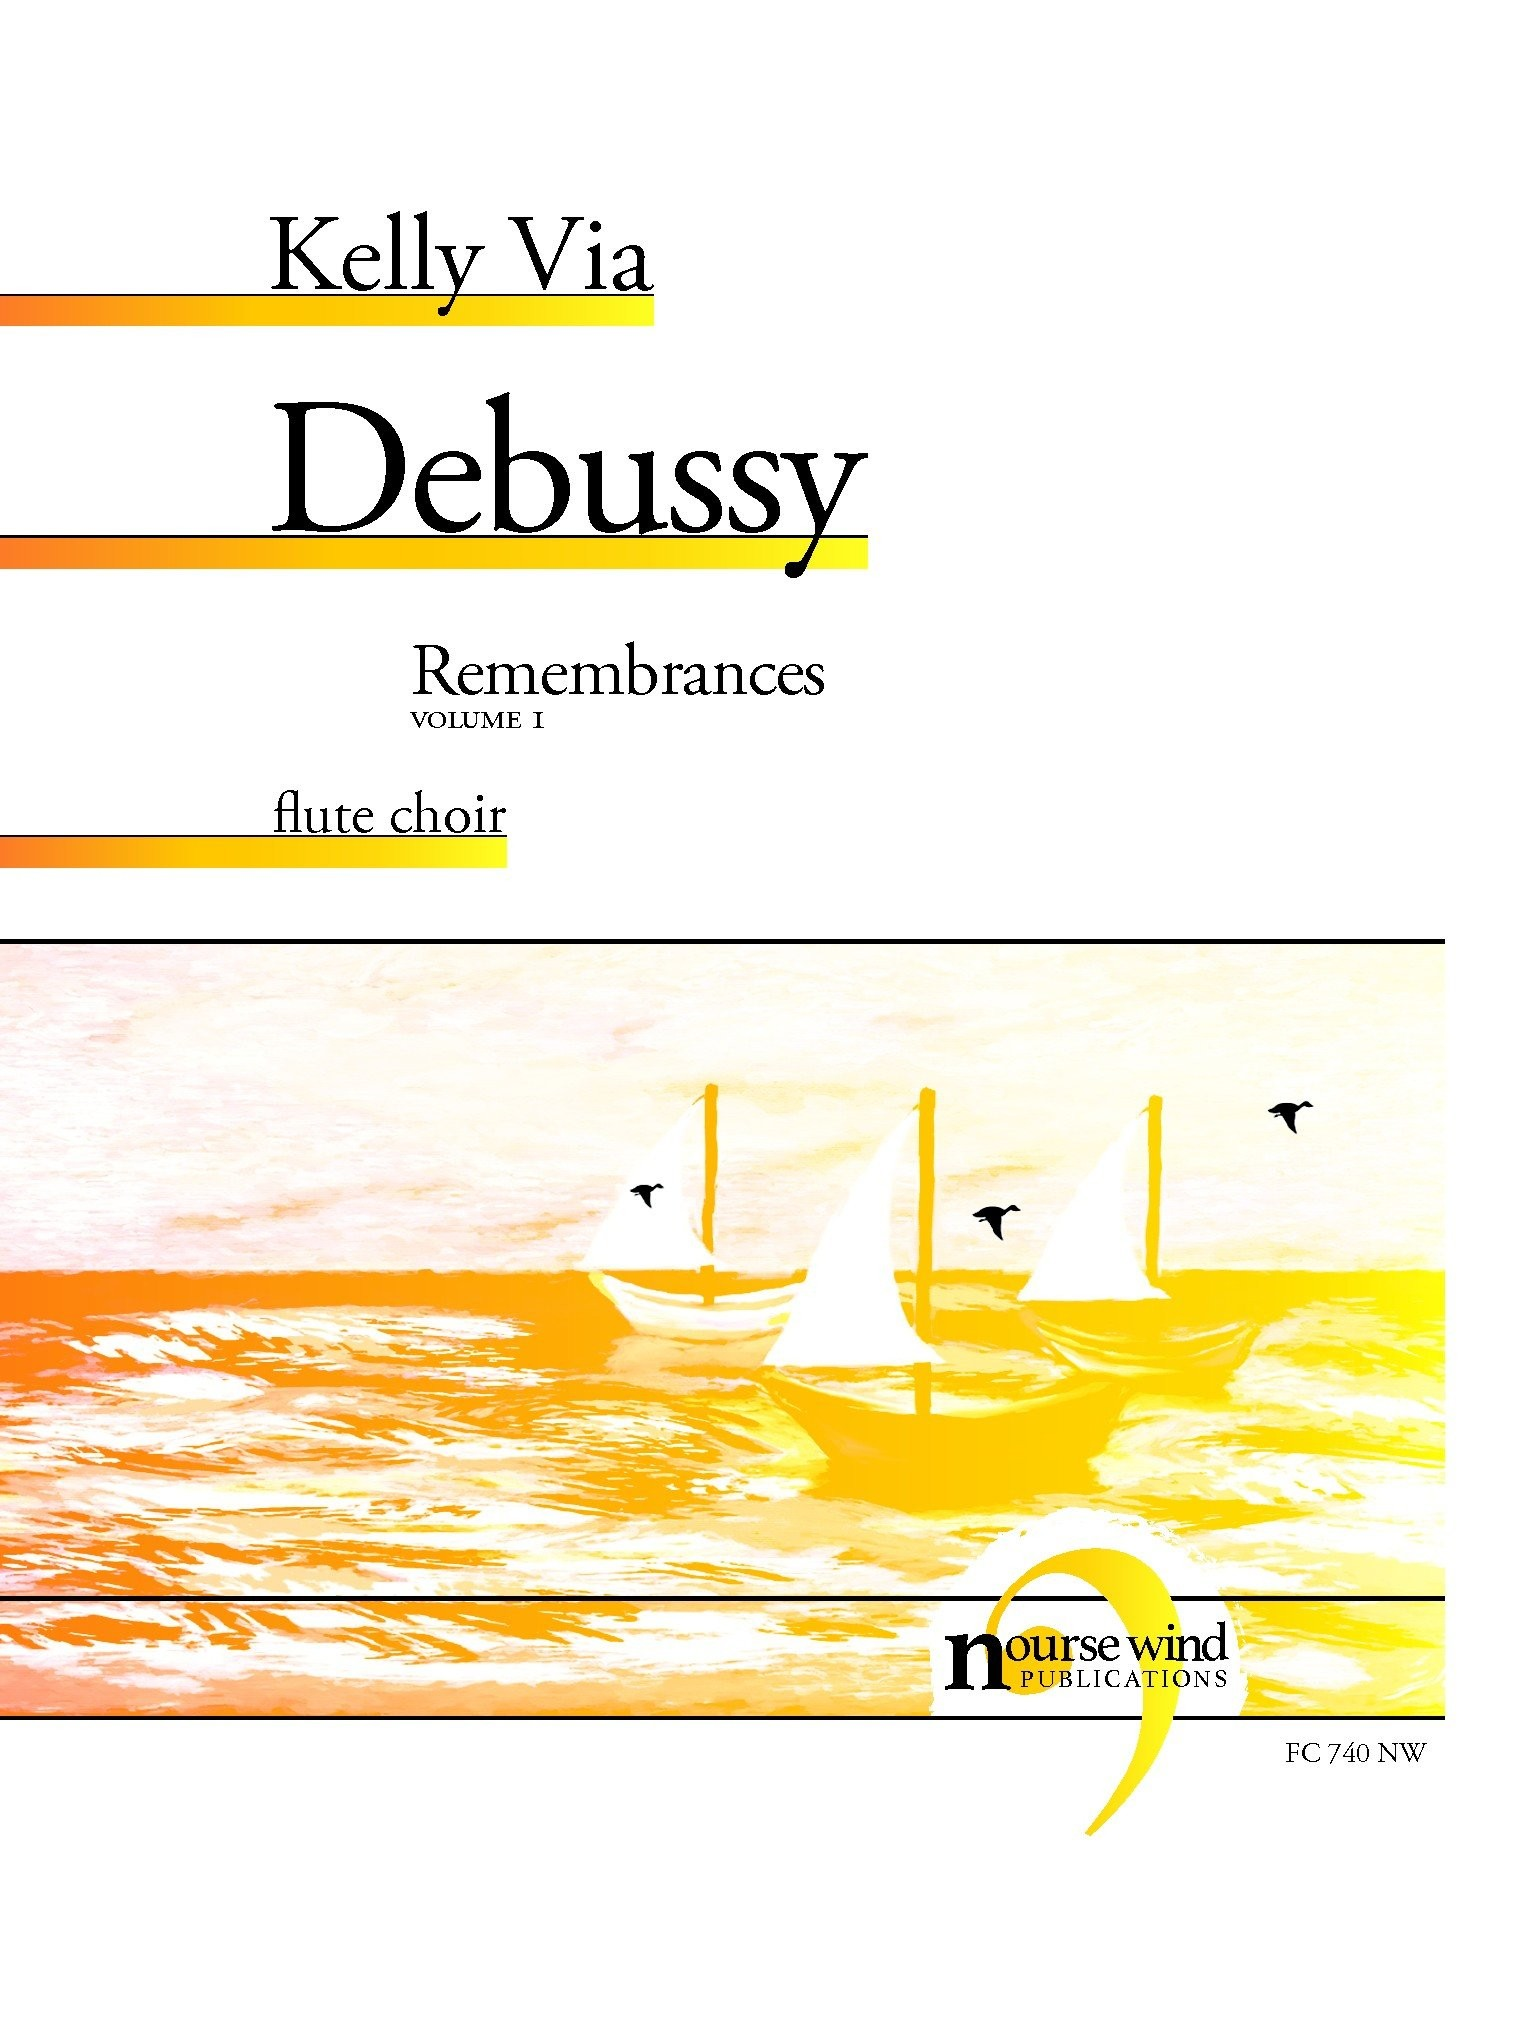 Via, K :: Debussy [Remembrances, Volume 1]